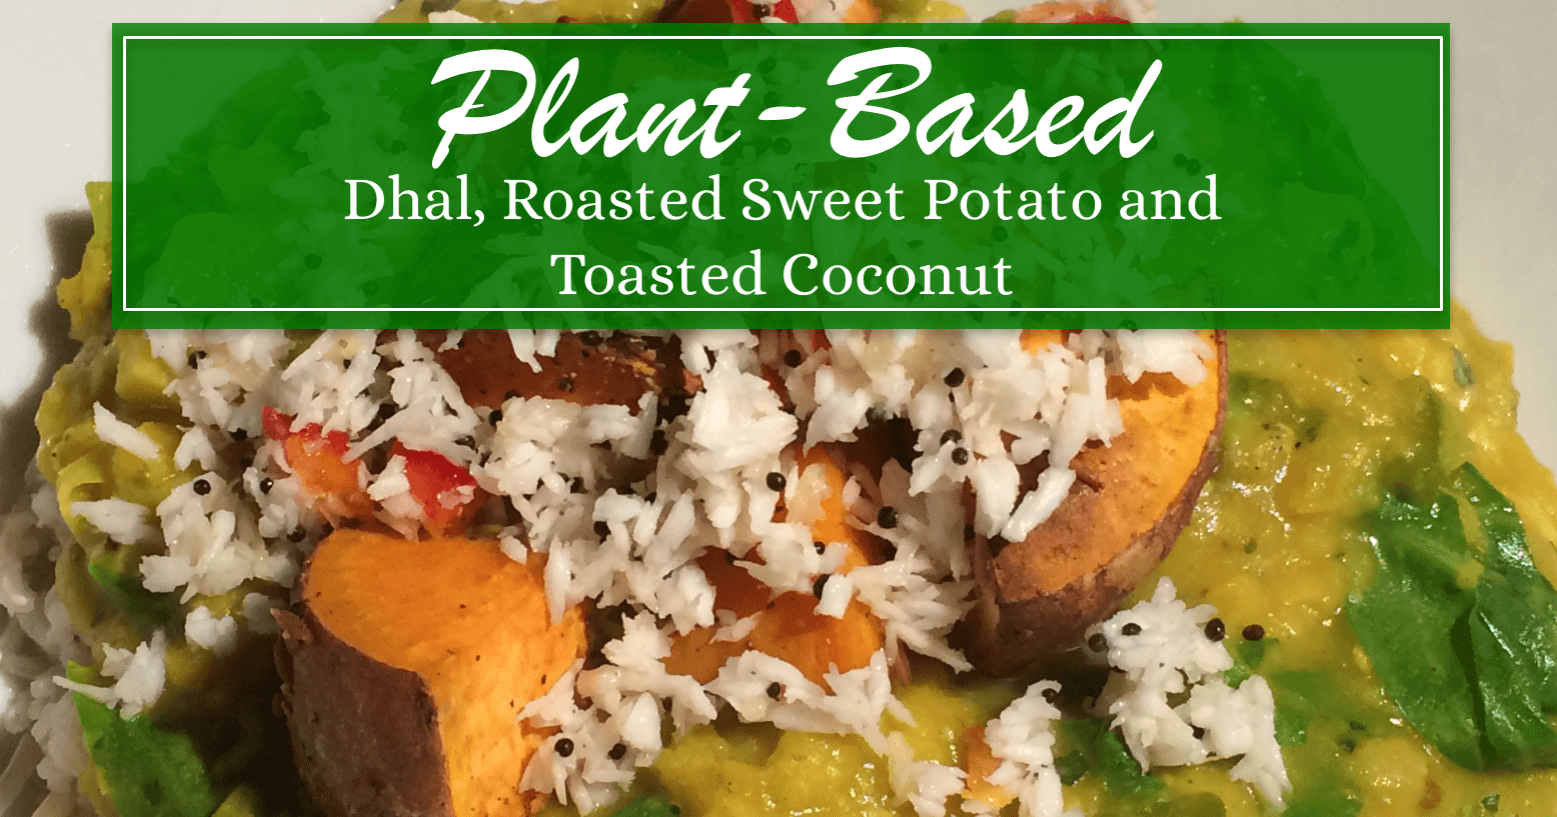 Plant-Based Vegan Dhal, Roasted Sweet Potato and Toasted Coconut